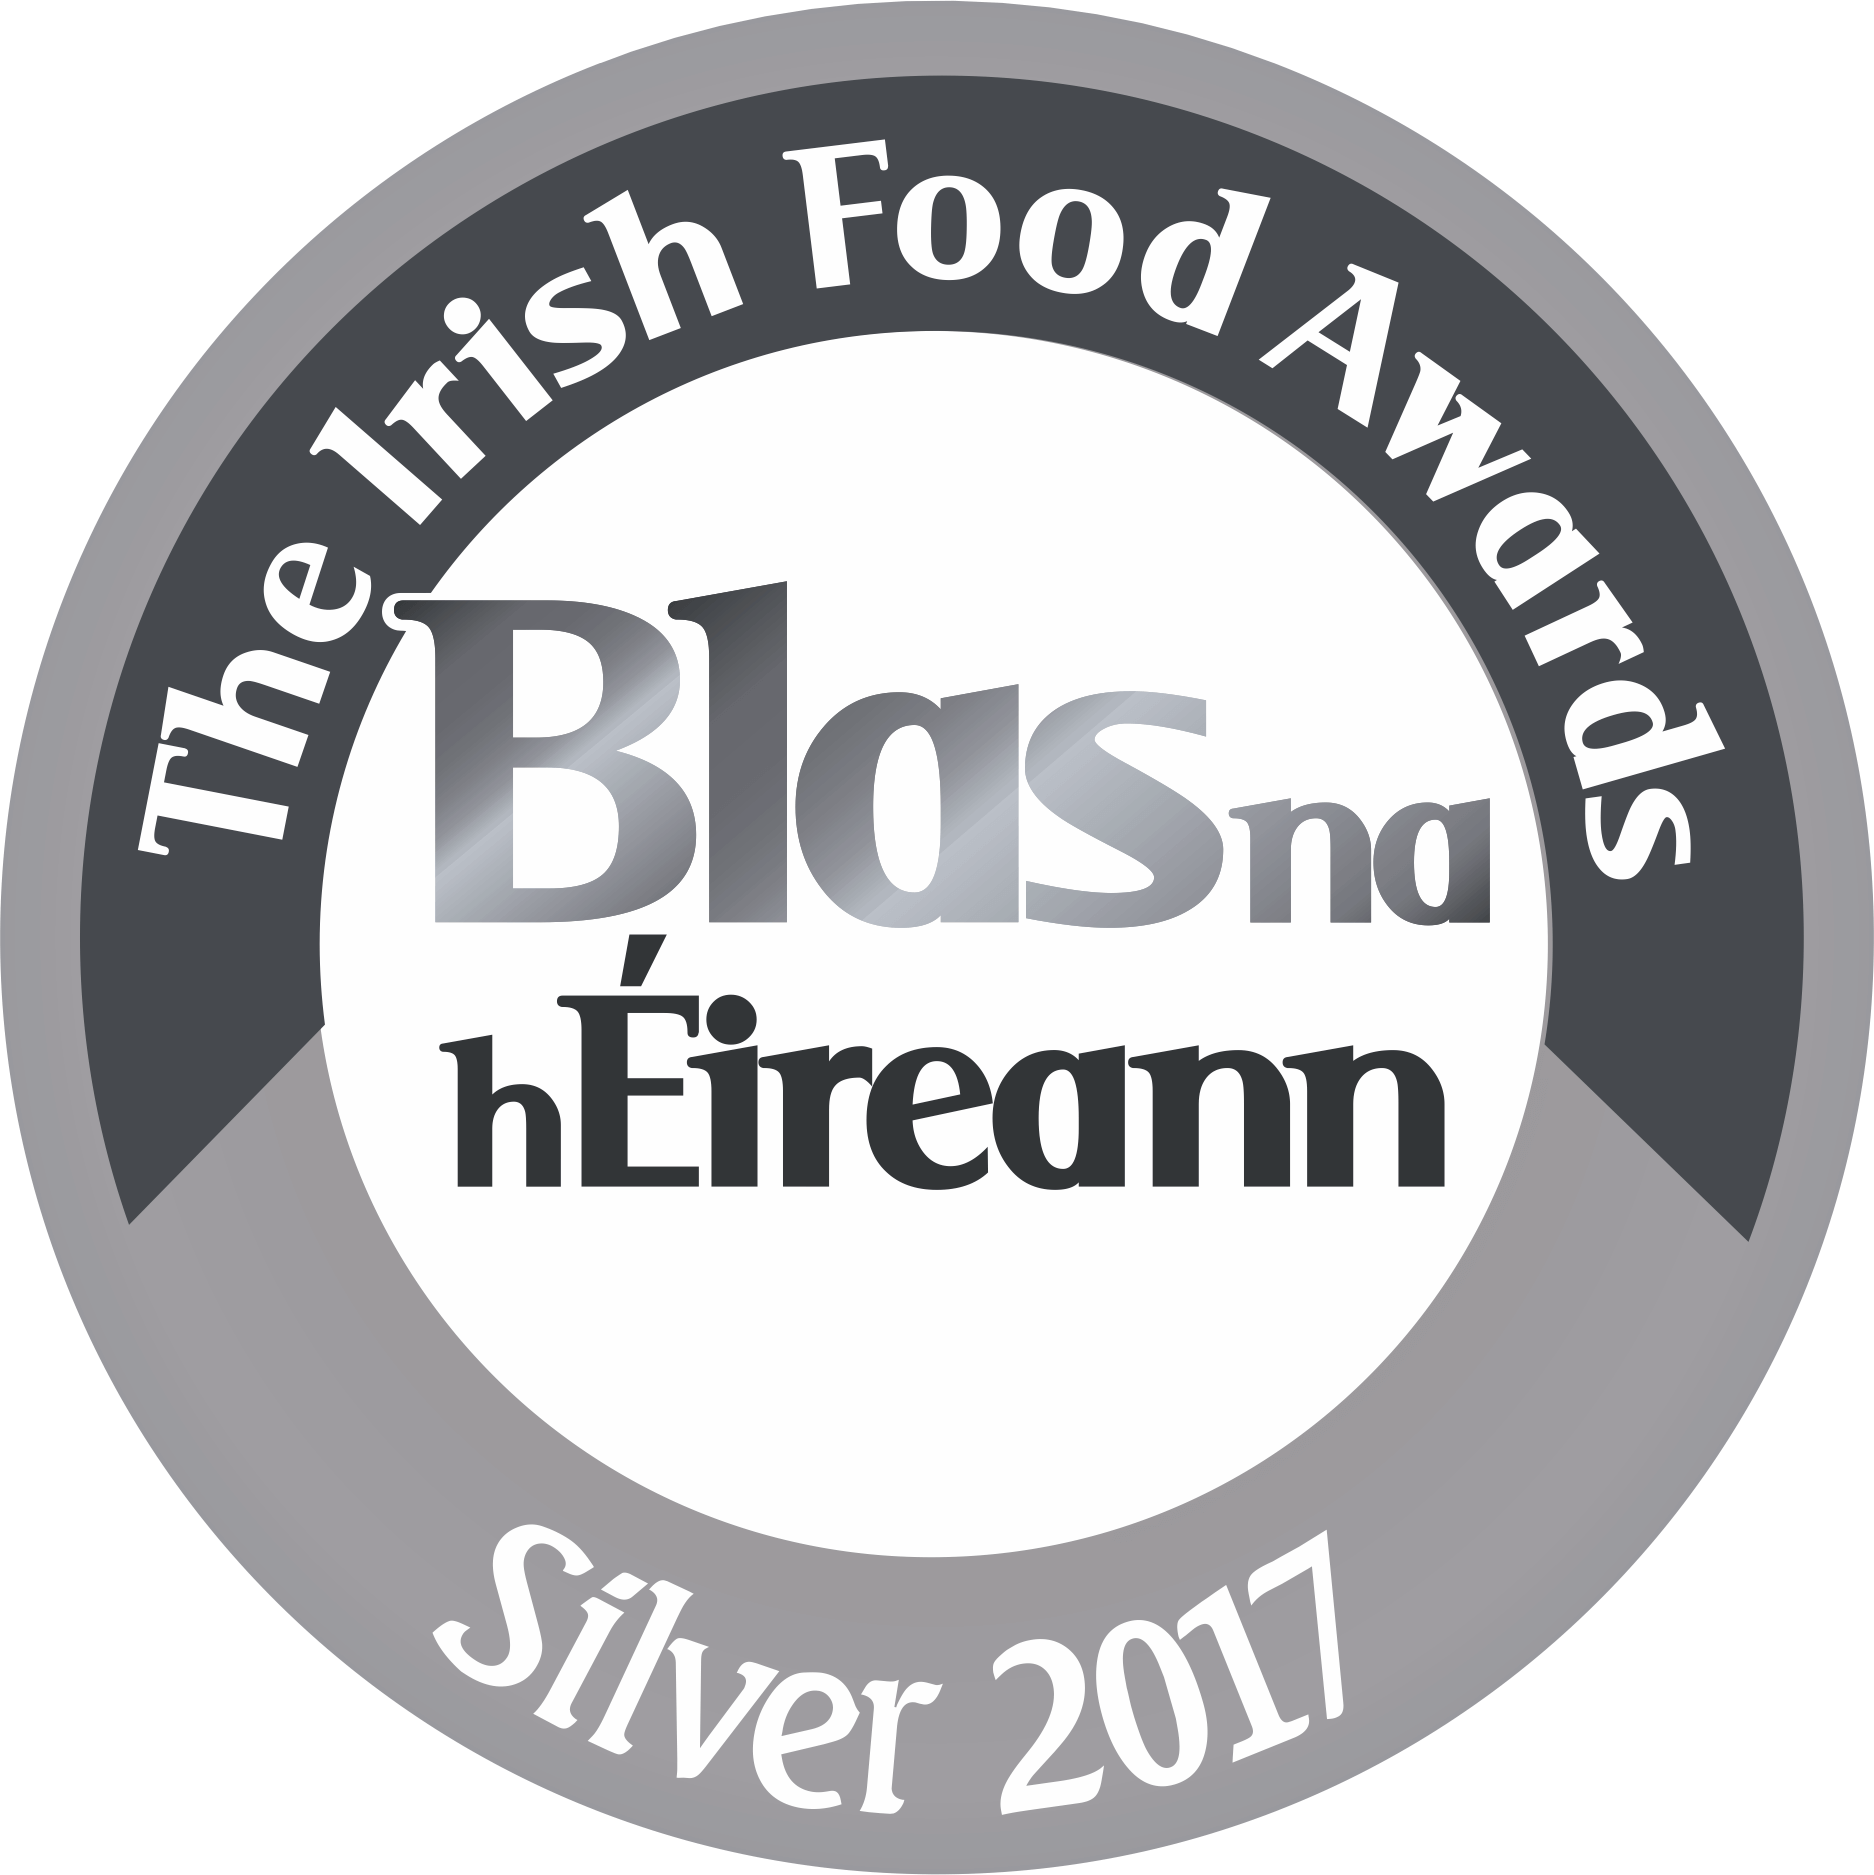 Keoghs crisps The irish food awards blas na hEireann silver 2017